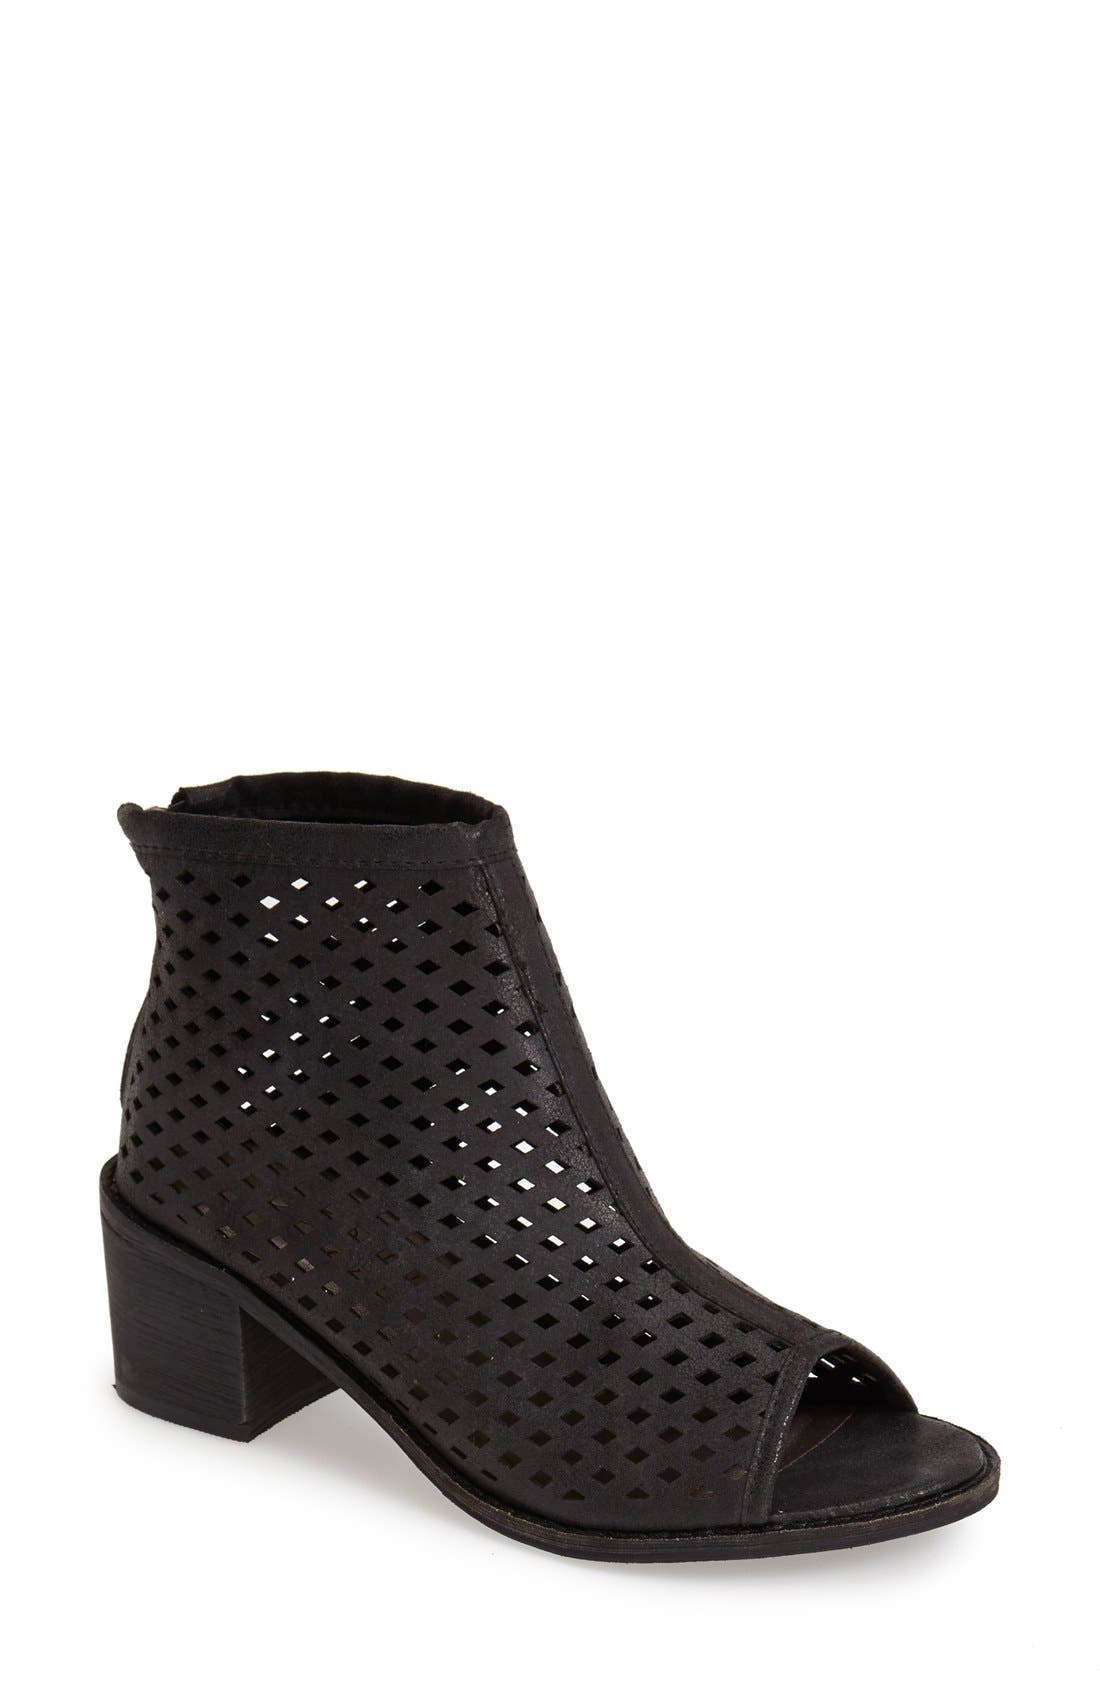 Main Image - Coconuts by Matisse 'Lazer' Cutout Bootie (Women)